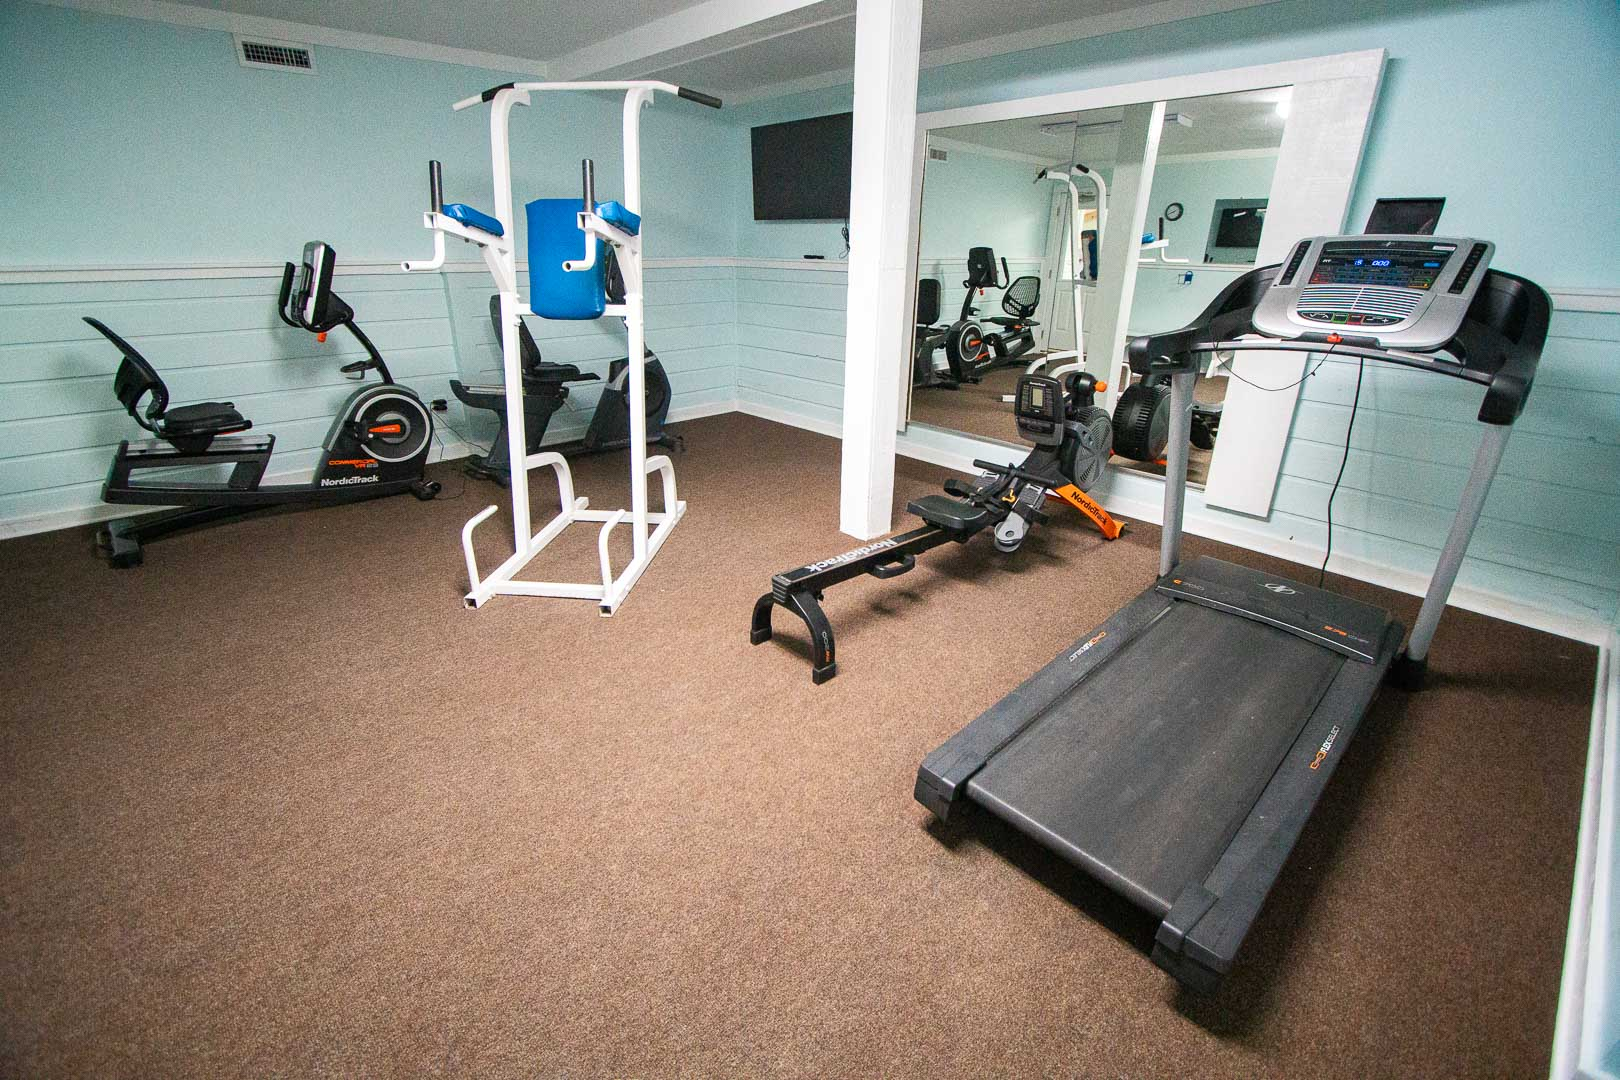 An indoor gym at VRI's Barrier Island Station in North Carolina.